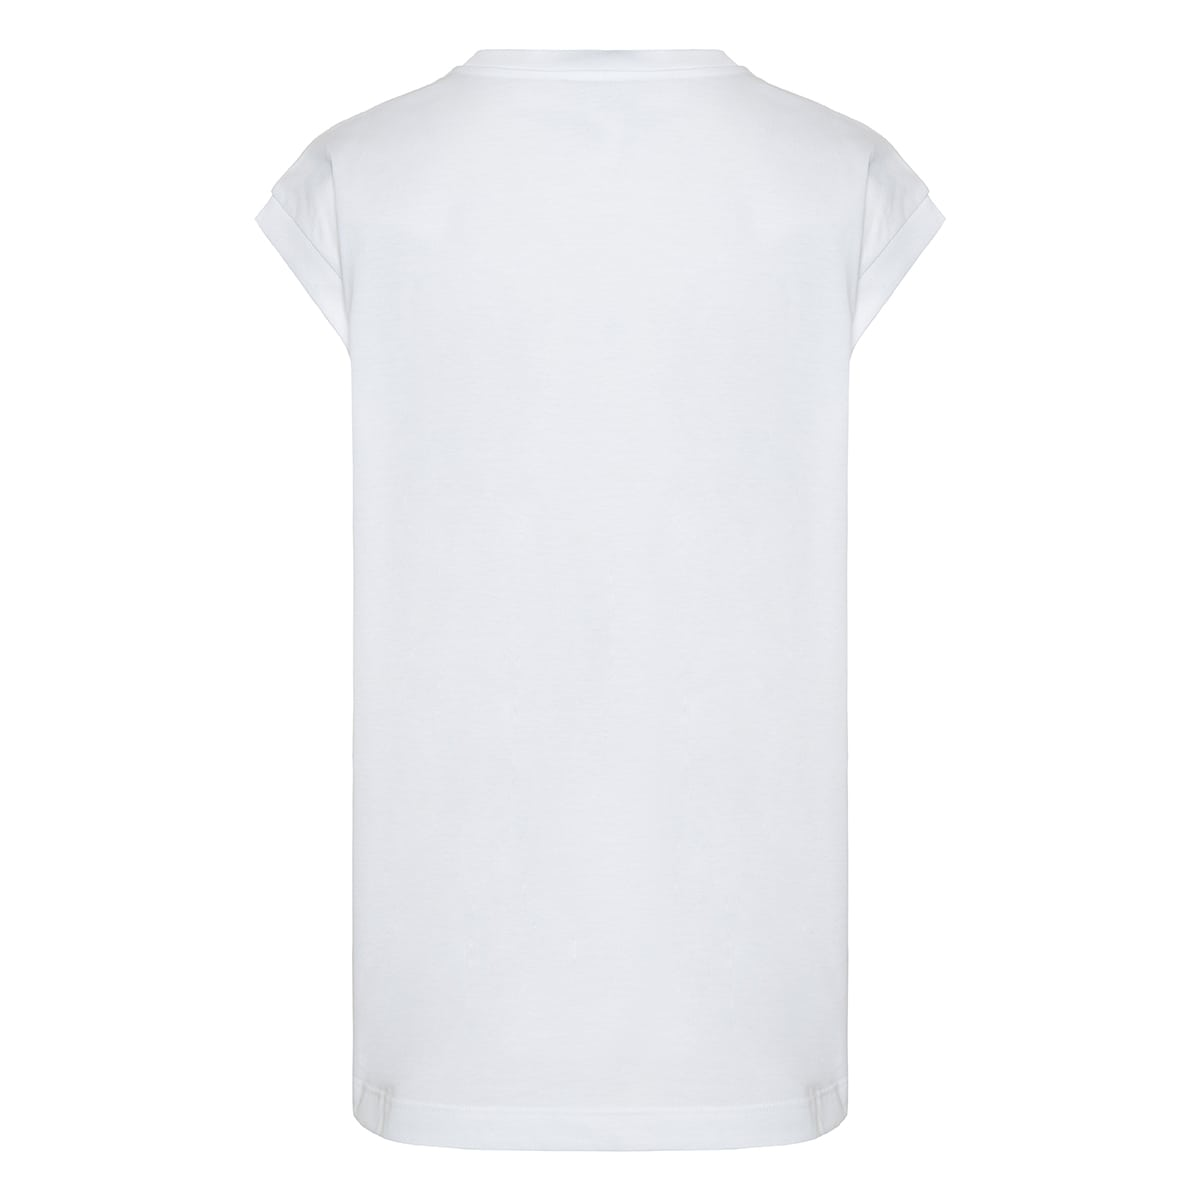 DG cotton t-shirt